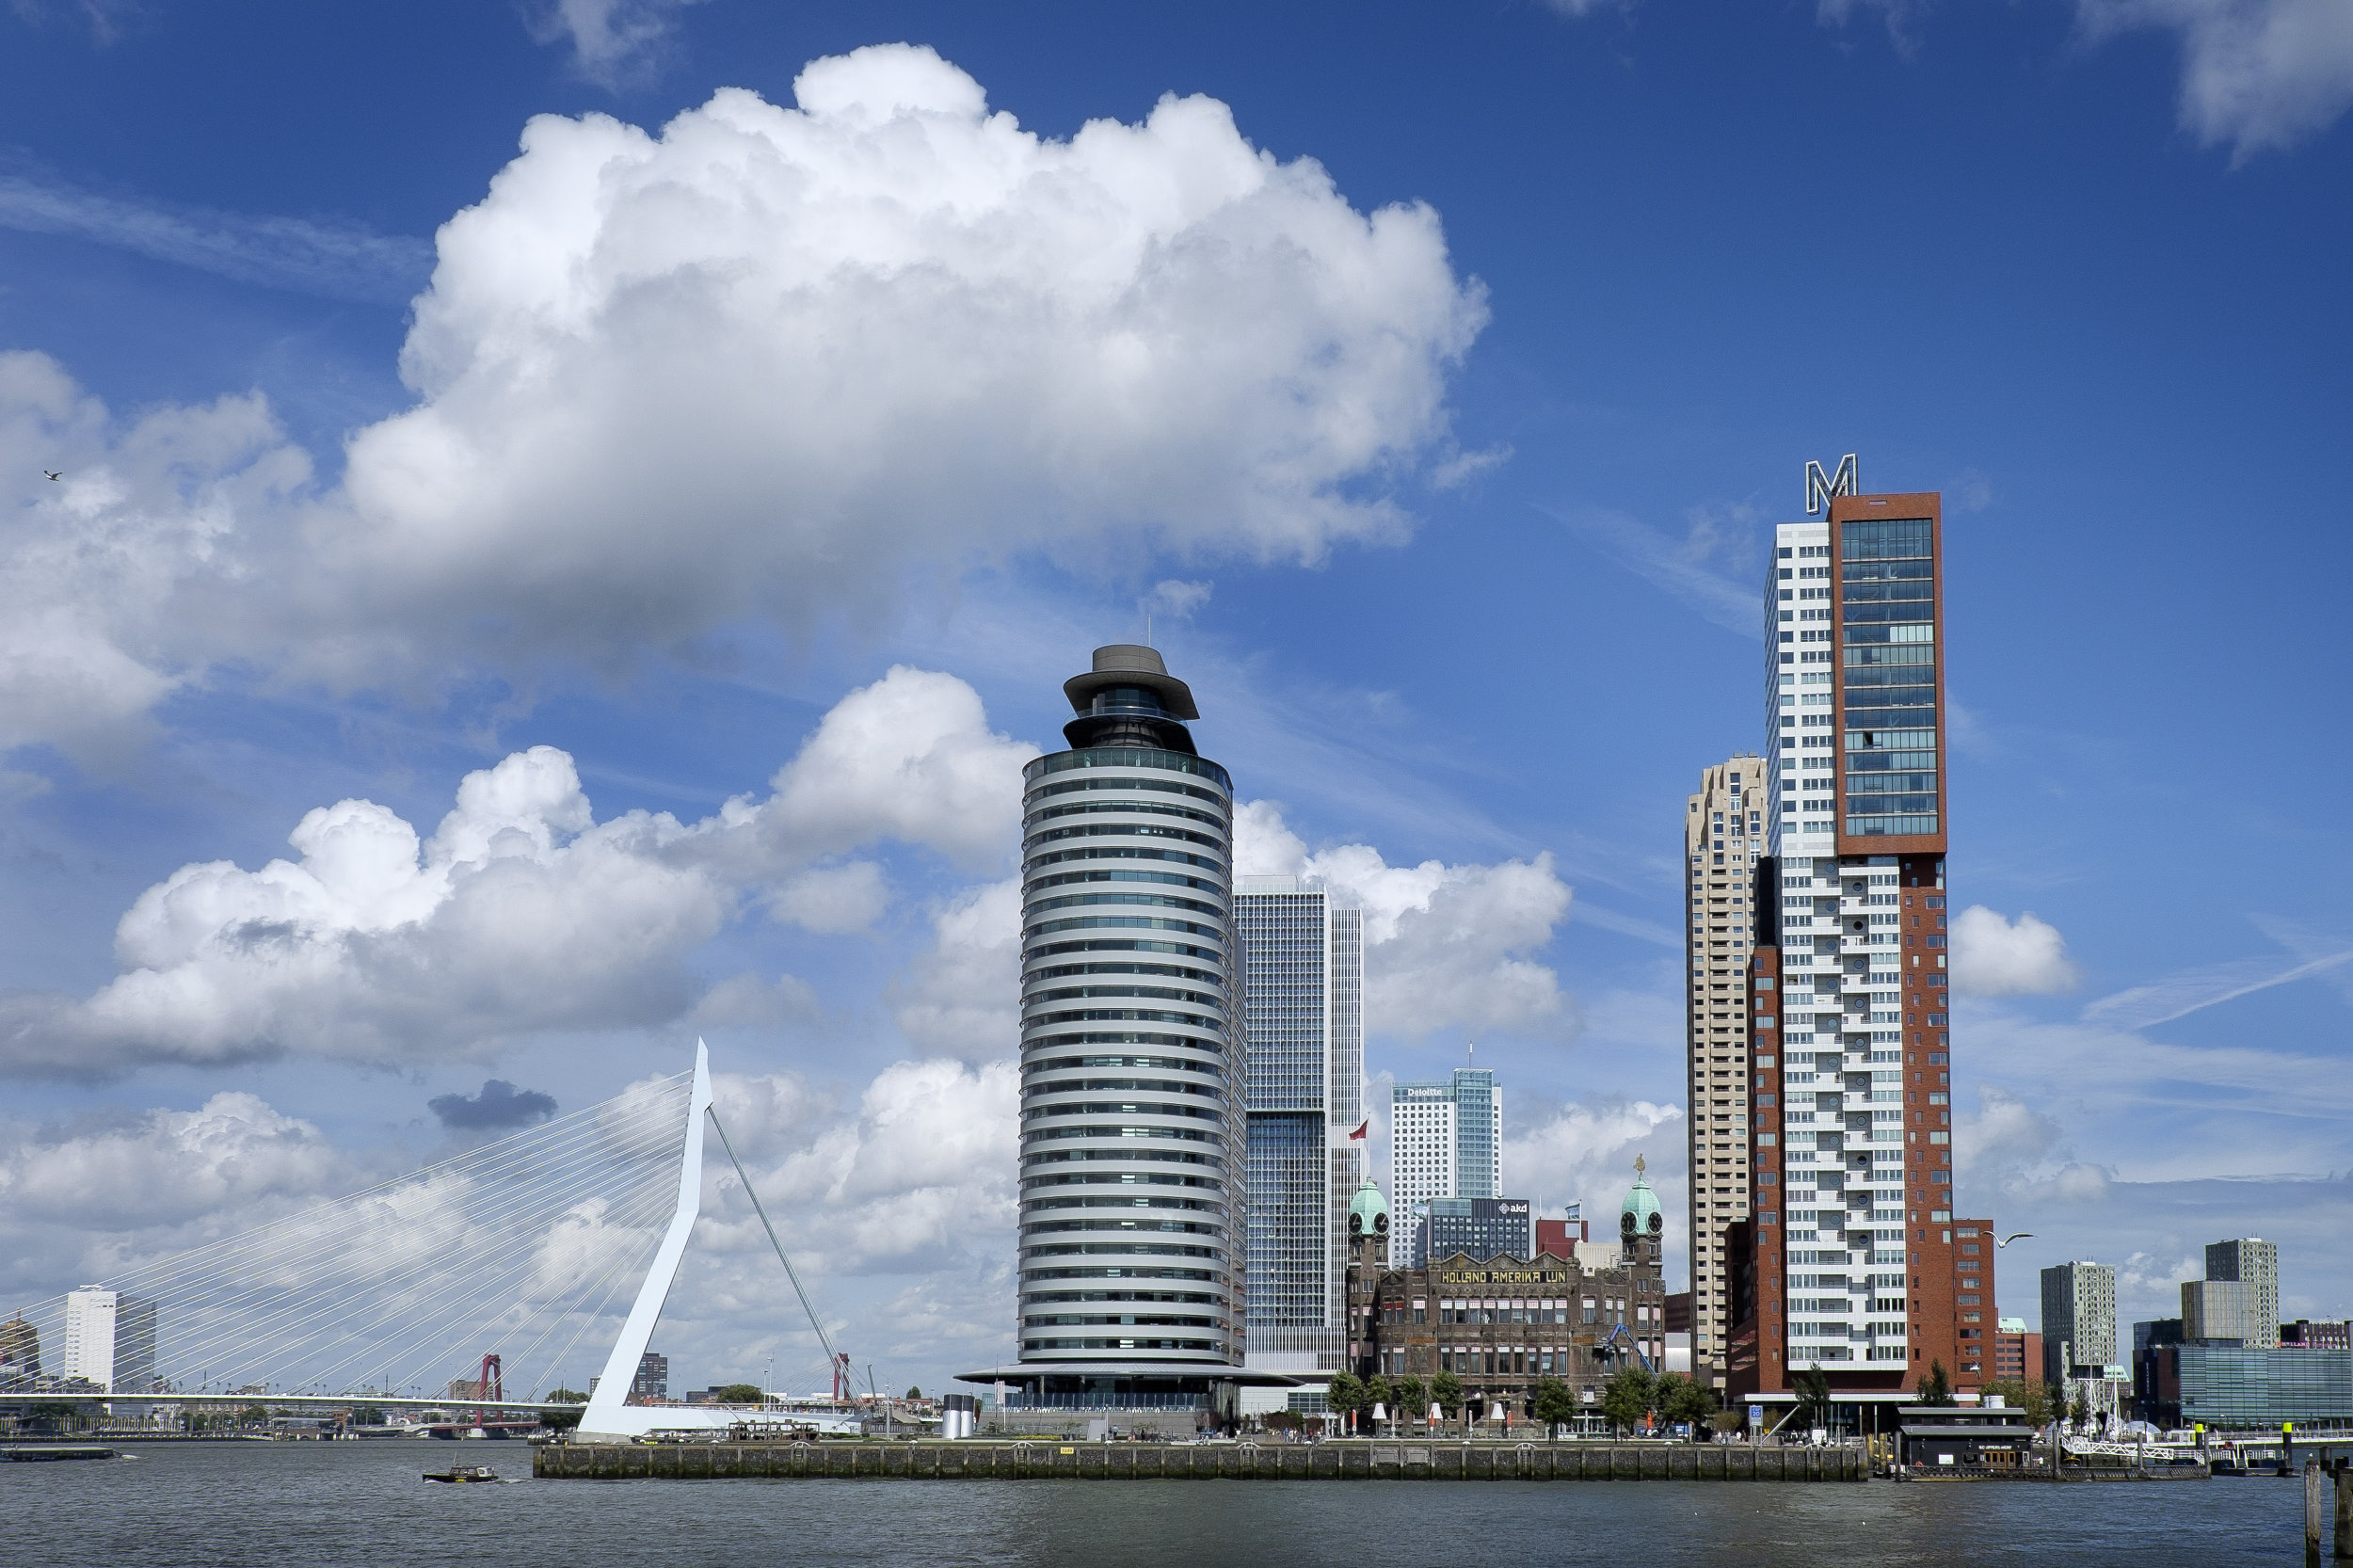 Rotterdam Kop van Zuid Skyline Erasmusbrug de Rotterdam Montevideo Hotel New York World Port Center